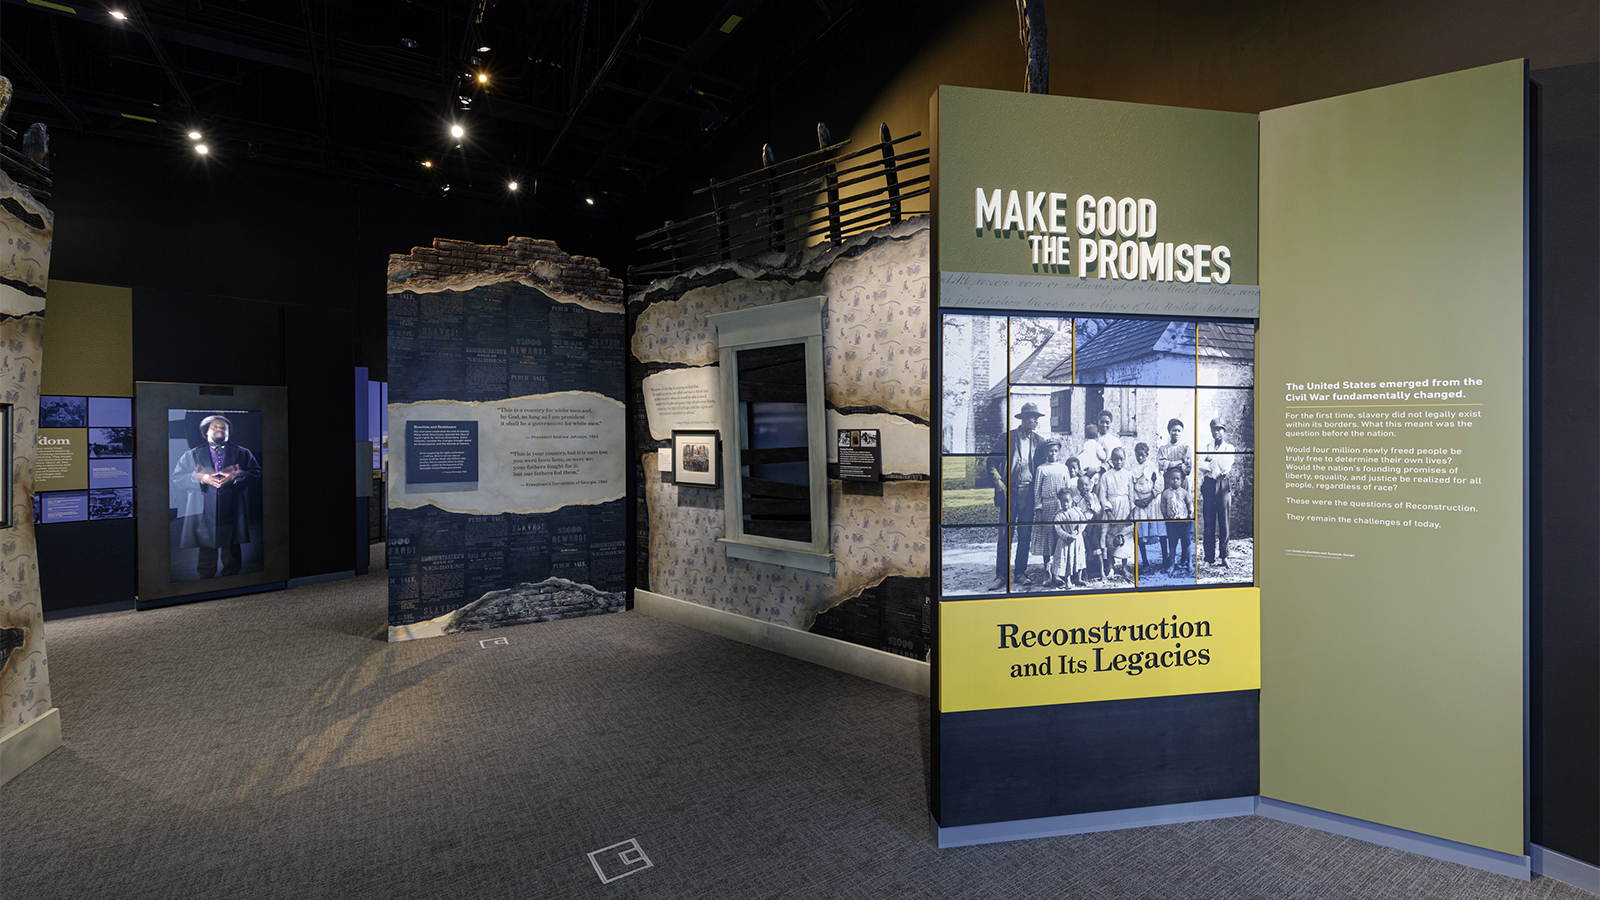 """The exhibition """"Make Good the Promises: Reconstruction and Its Legacies"""" opens Sept. 24, 2021, at the National Museum of African American History and Culture in Washington. Photo by Josh Weilepp/NMAAHC"""